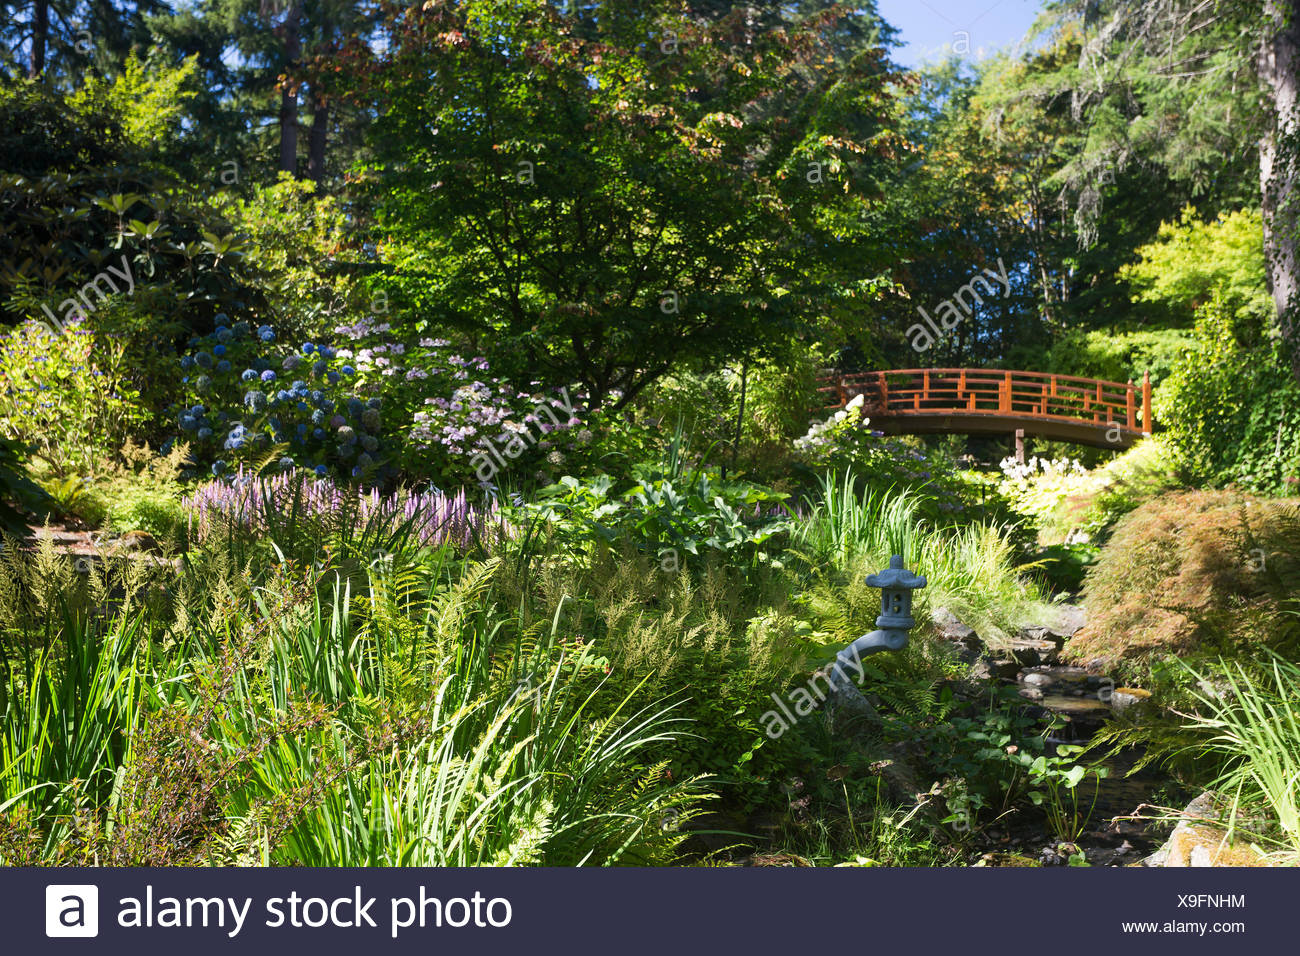 Located 12 kms north of downtown Victoria, the Horticultural Centre of the Pacific welcomes visitors to it's public gardens, cared for by volunteers, staff and students.  Victoria, Vancouver Island, British Columbia, Canada - Stock Image